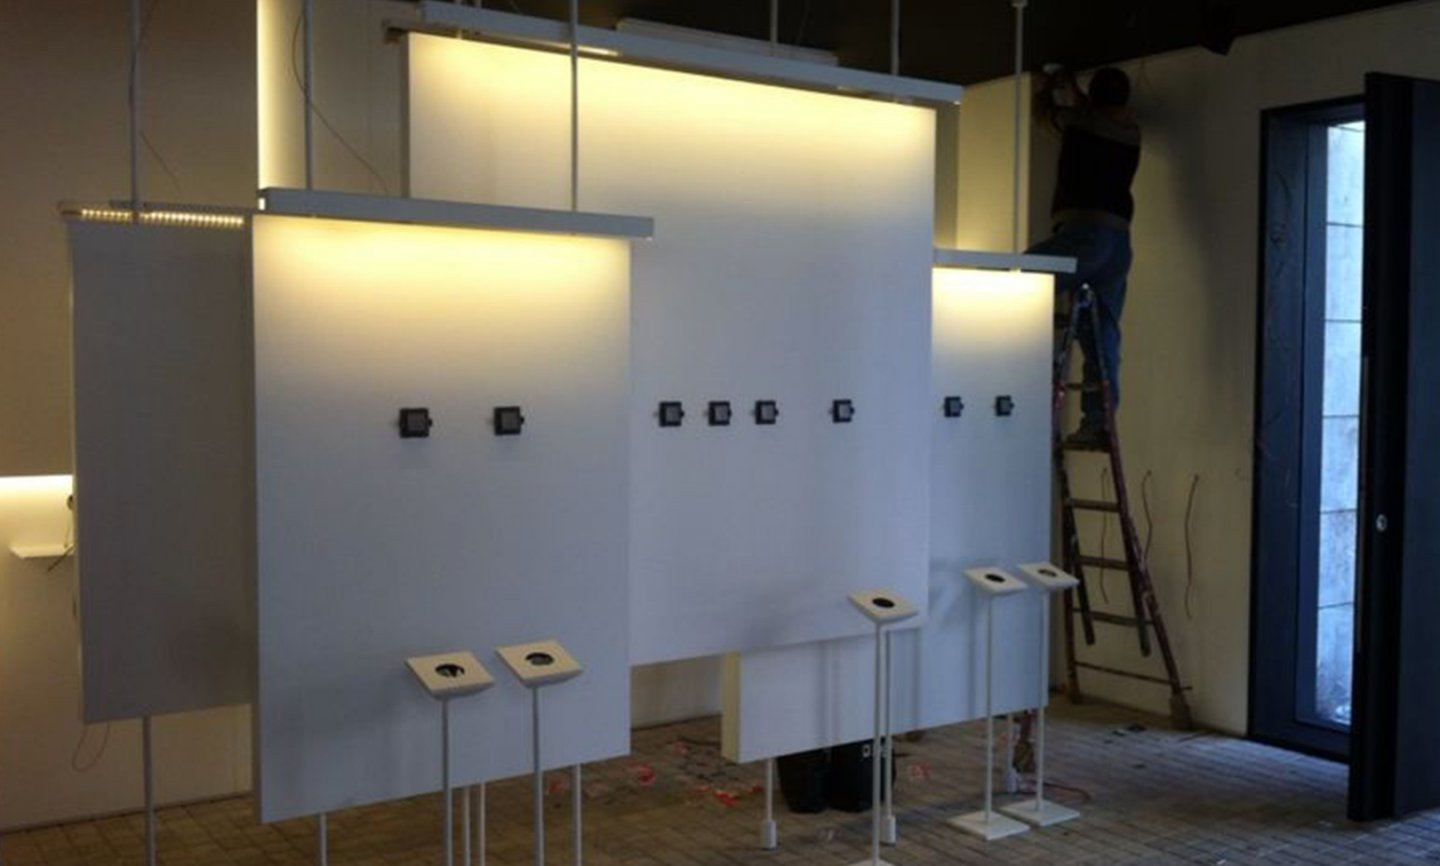 Legrand Concept Store - construction phase image